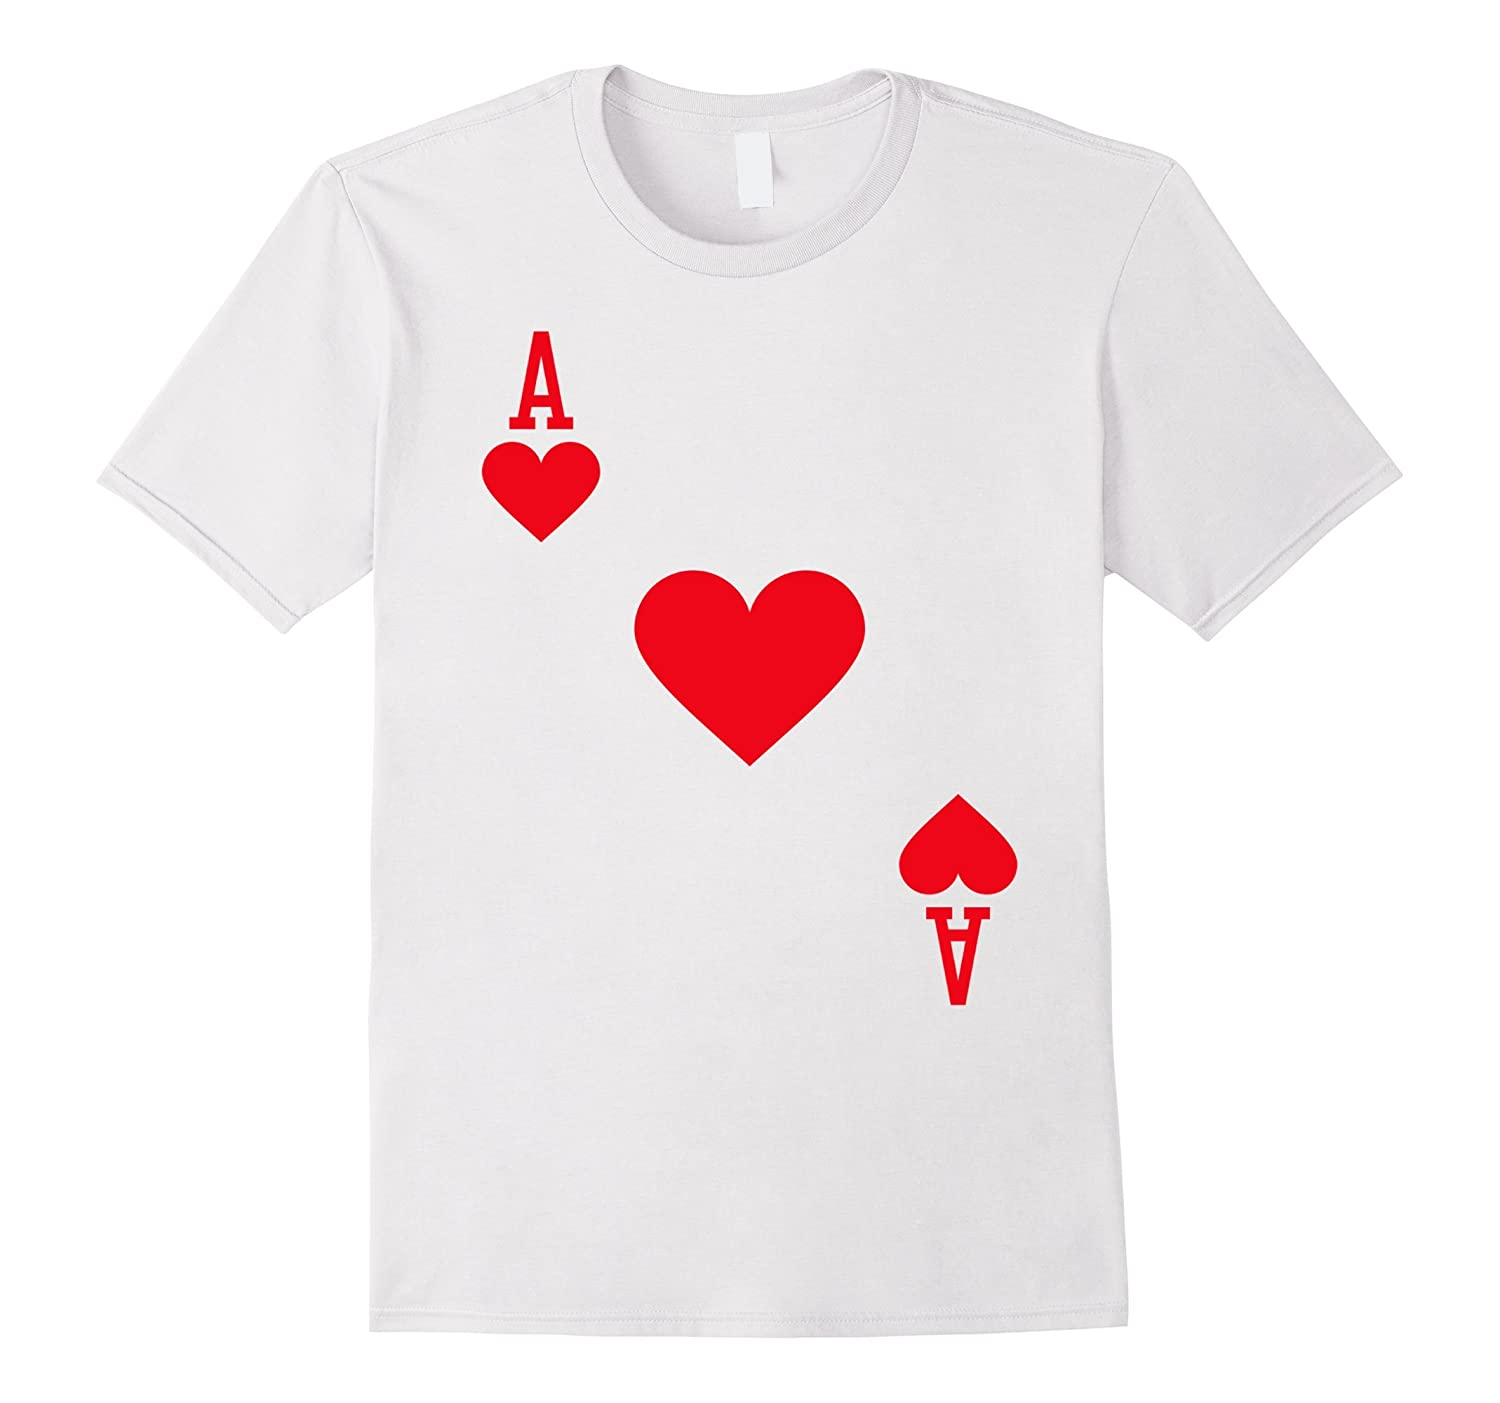 Ace of Hearts Costume T-Shirt Halloween Deck of Cards-ANZ